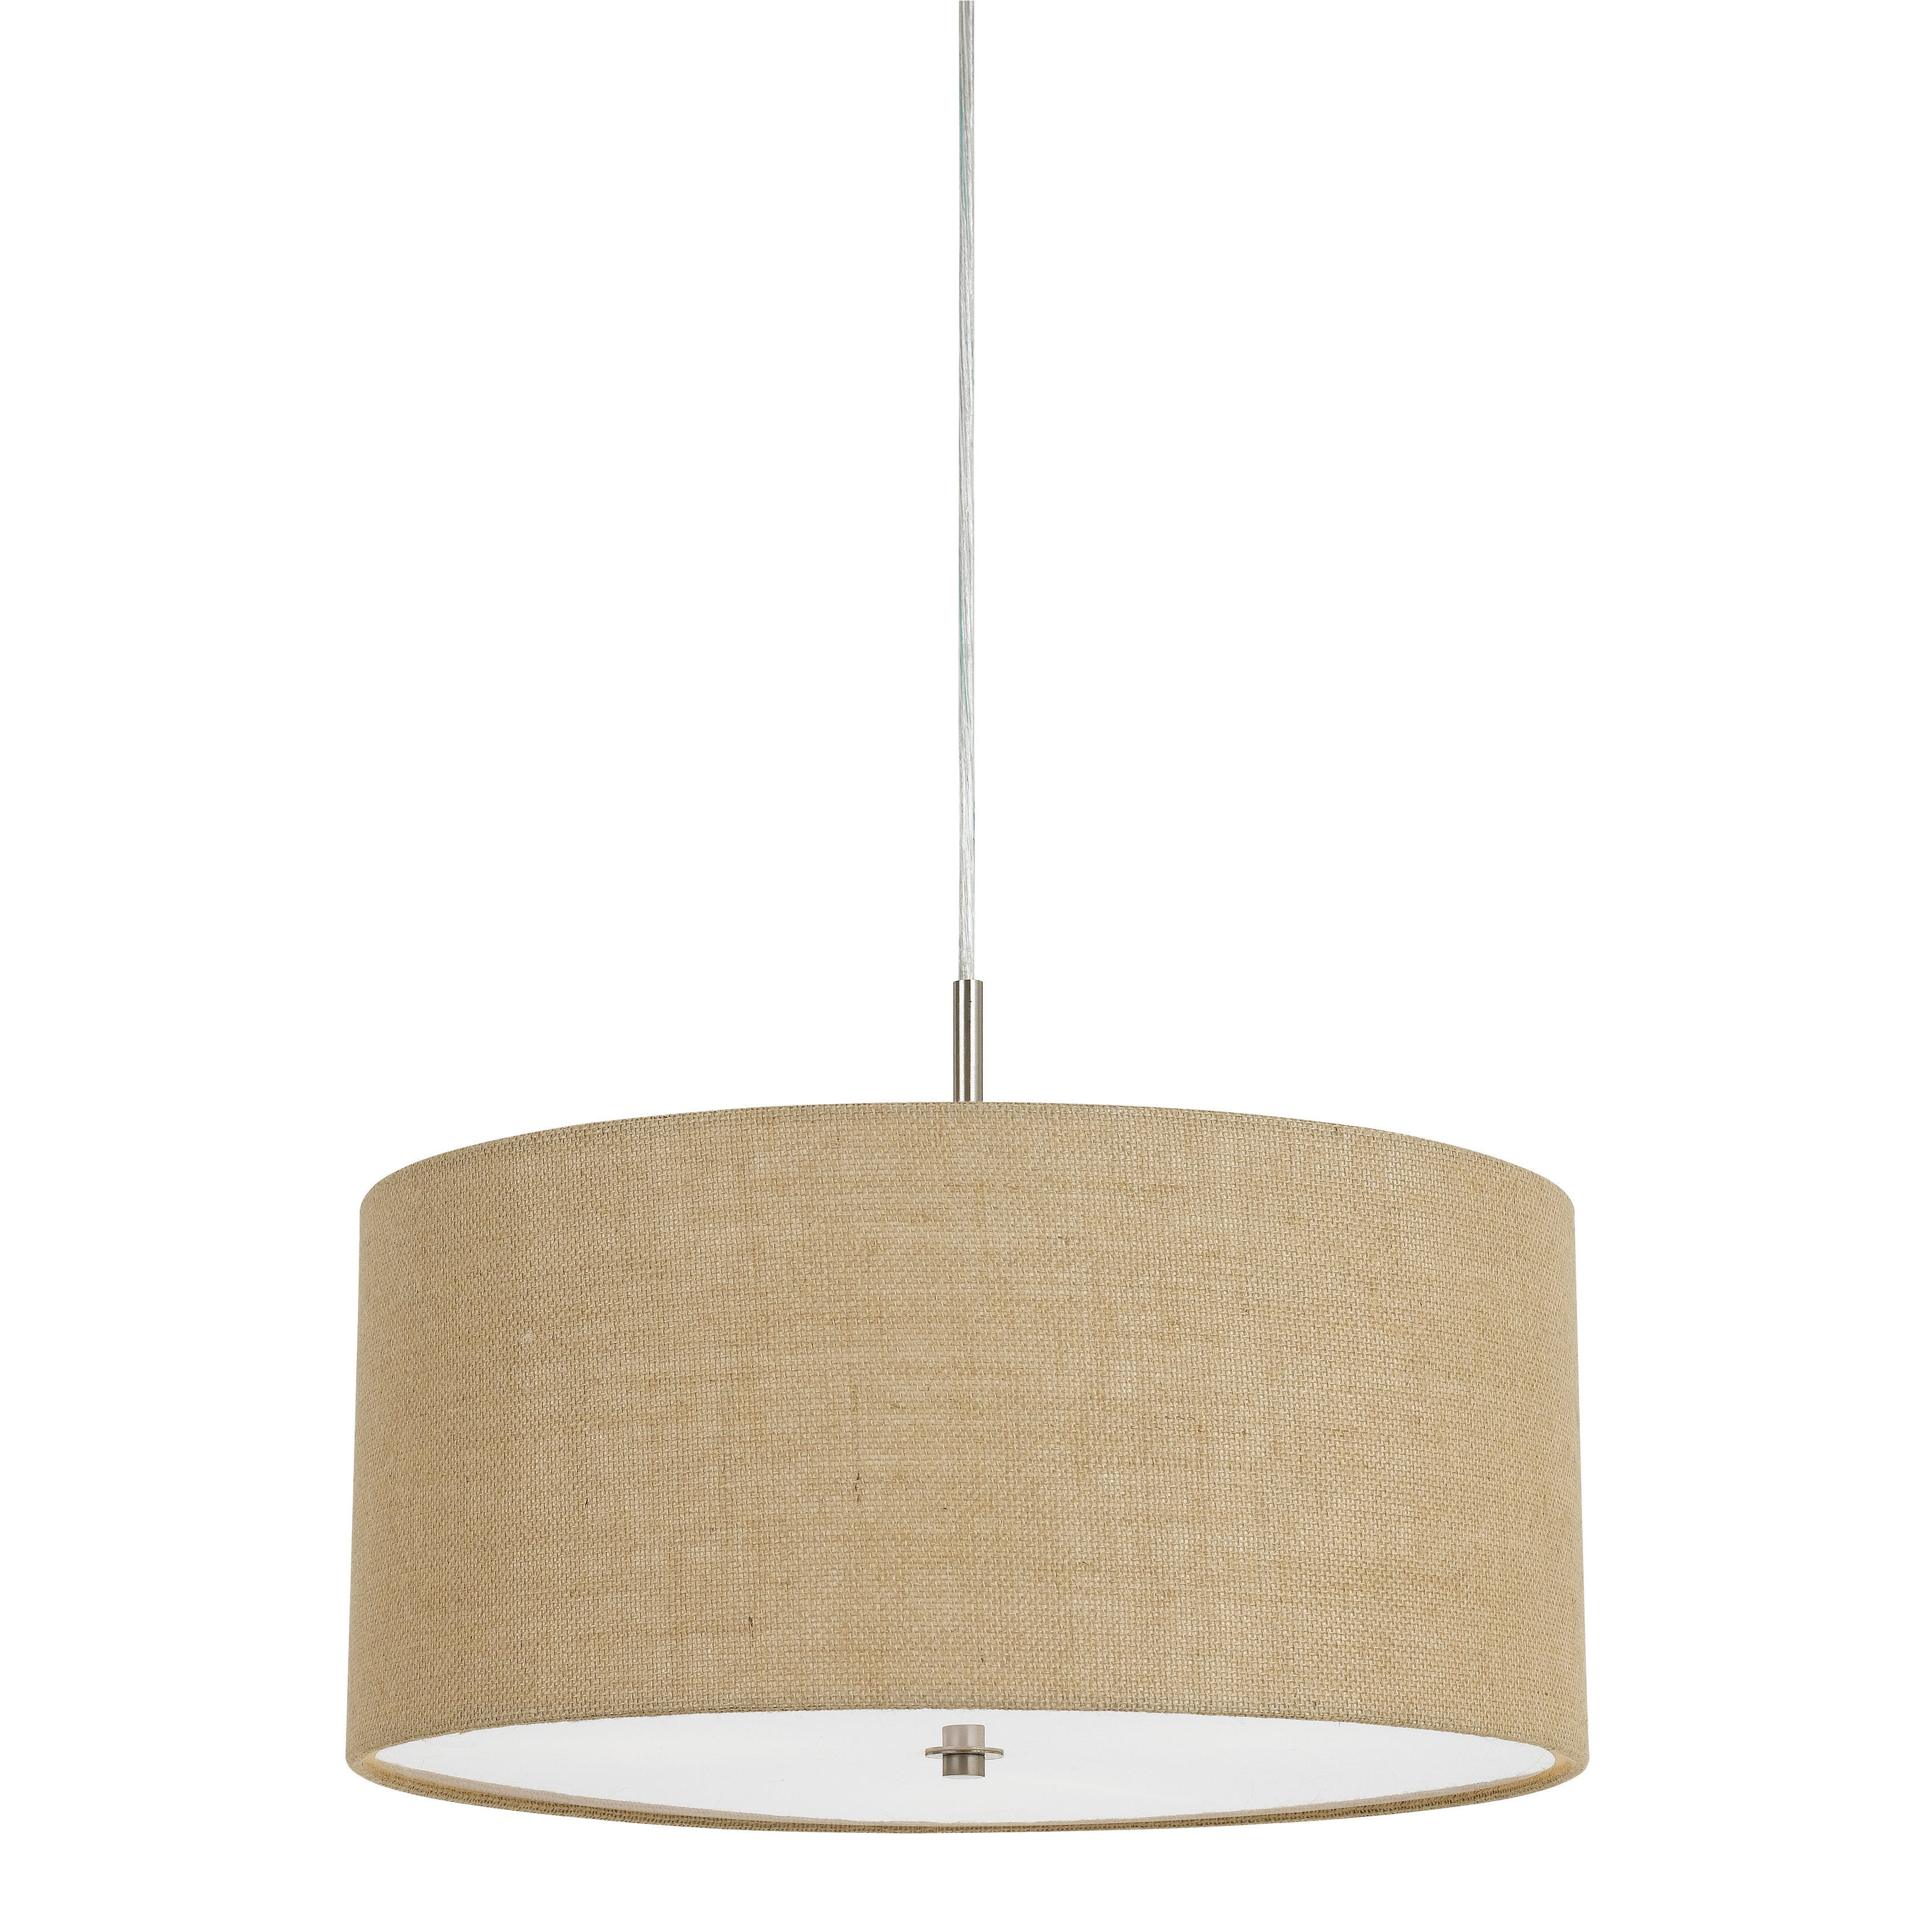 Drum pendant lighting fixtures Stainless Shop Addison Iron 60watt 3light Drum Pendant Light Fixture With Beige Burlap Shade Free Shipping Today Overstockcom 13742637 Overstockcom Shop Addison Iron 60watt 3light Drum Pendant Light Fixture With